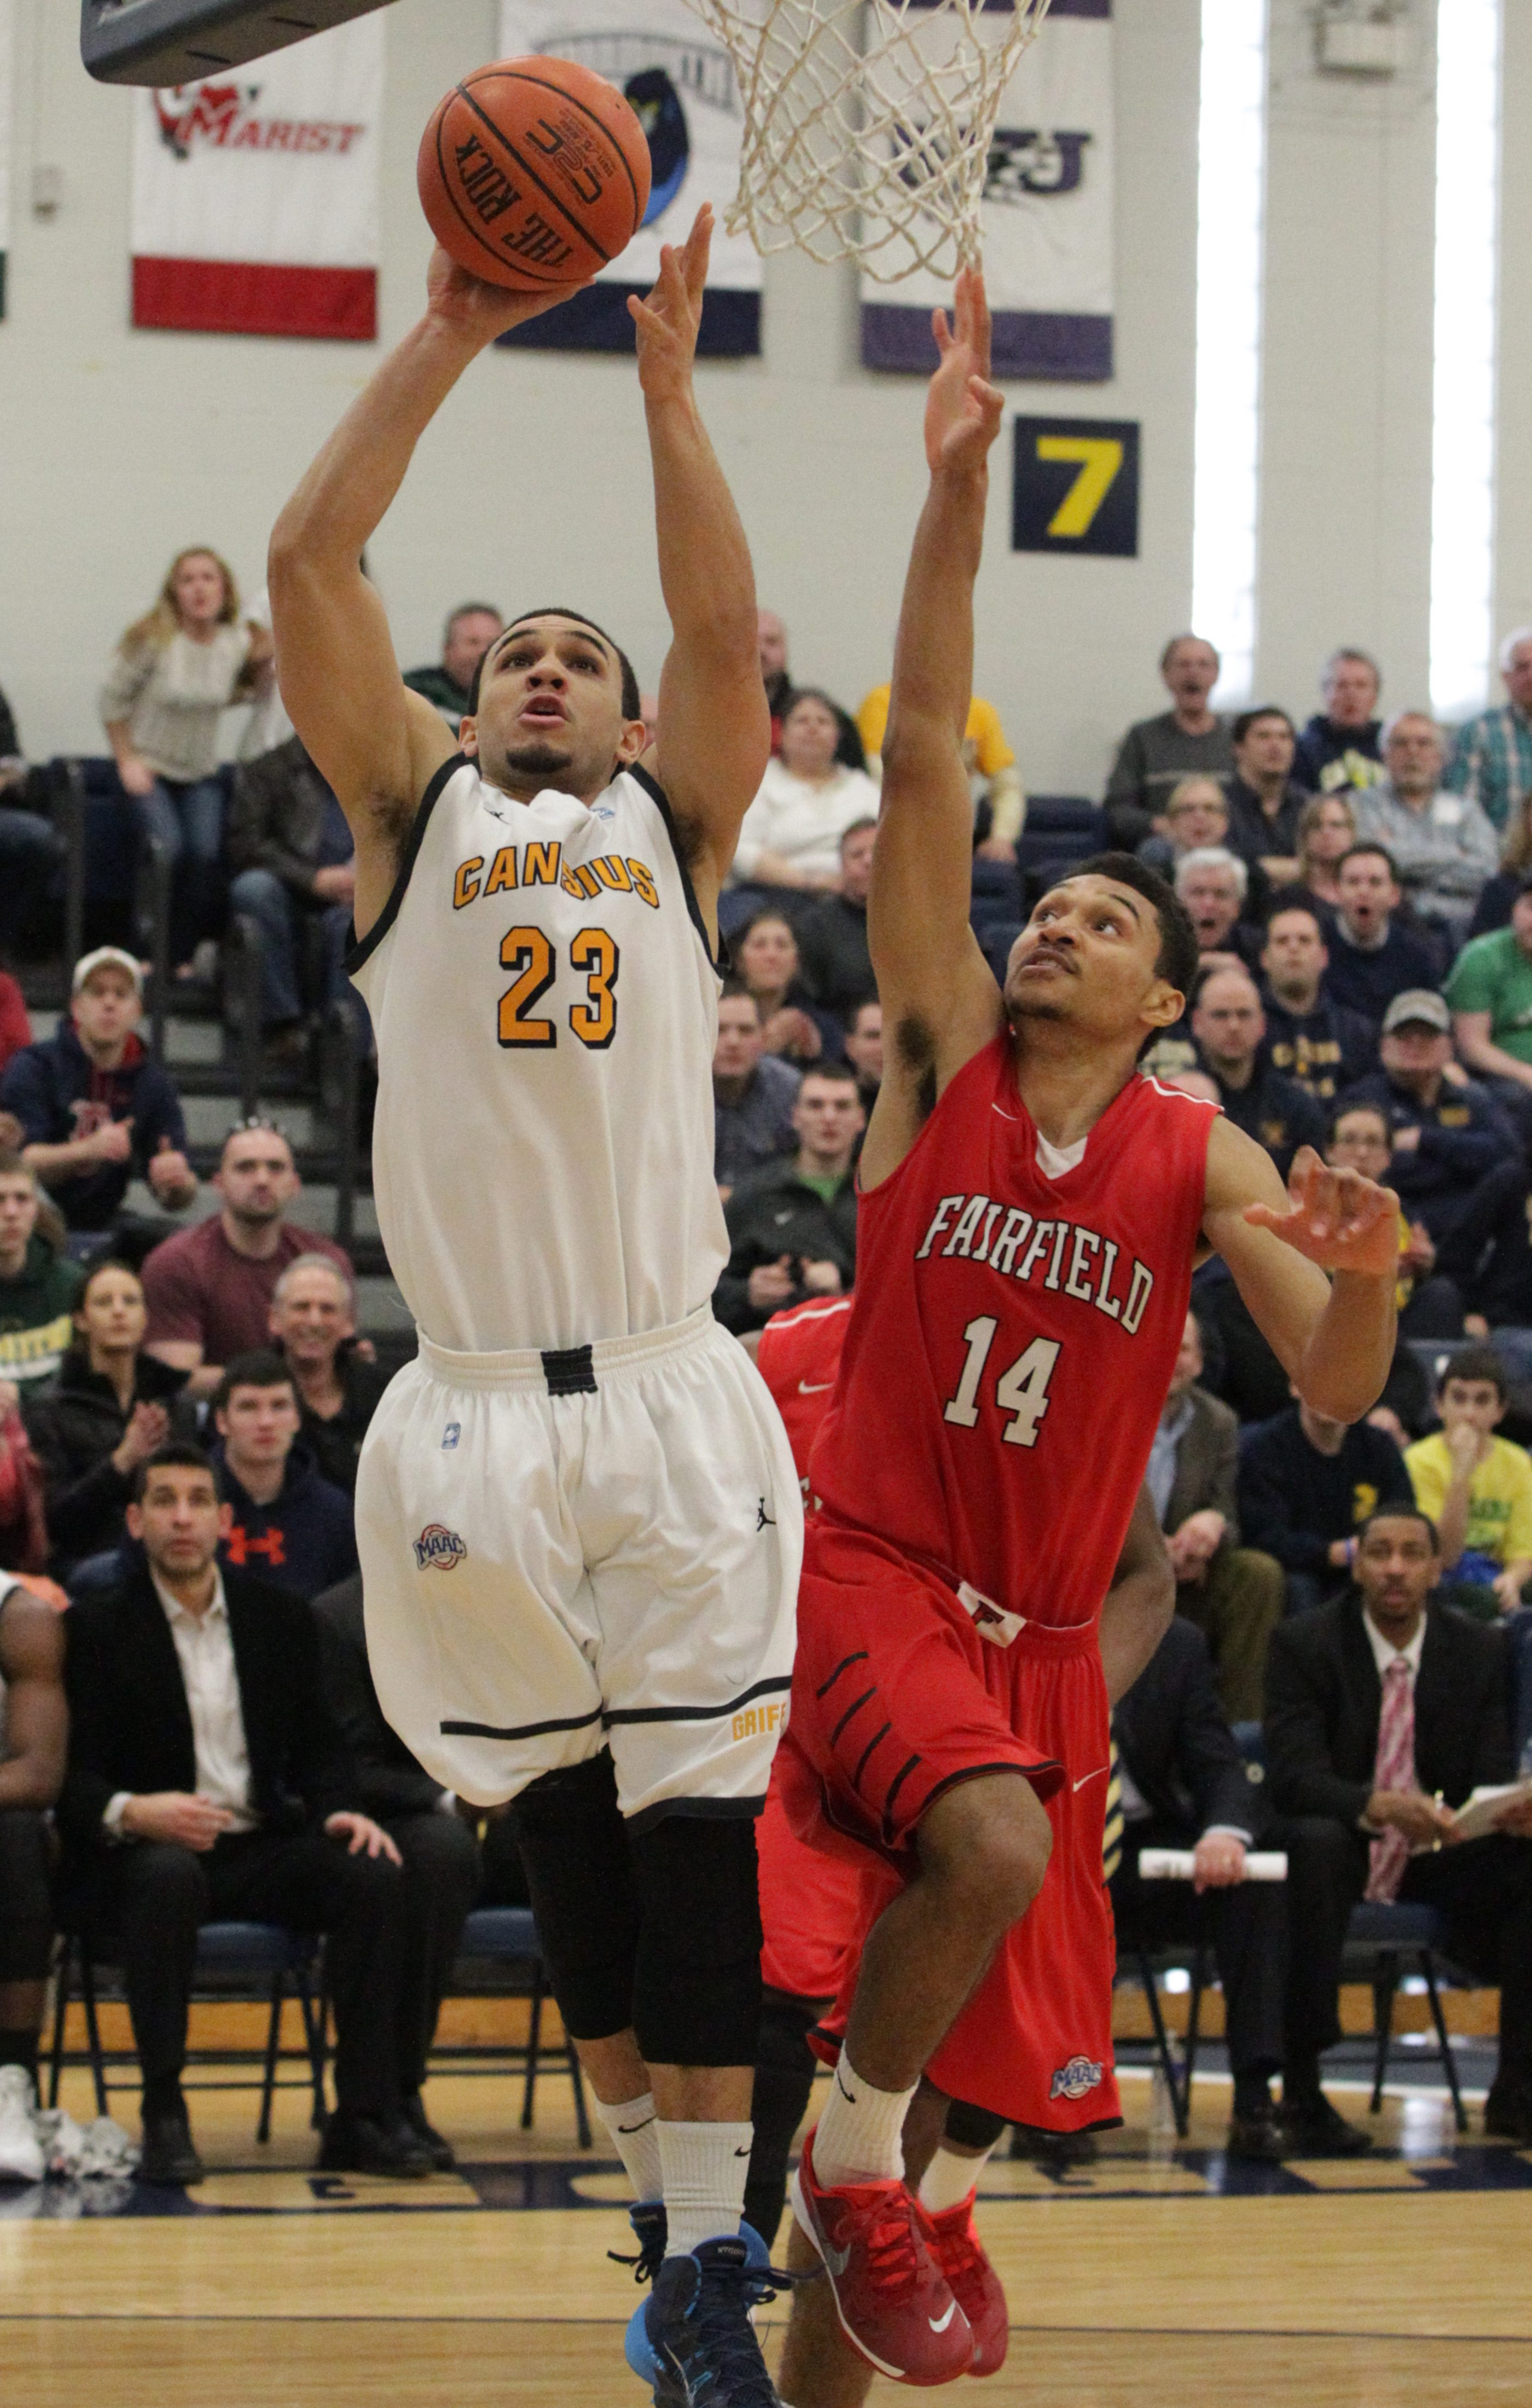 Chris Perez (23) of Canisius scores over Fairfield's Marcus Gilbert (14) in the second half.